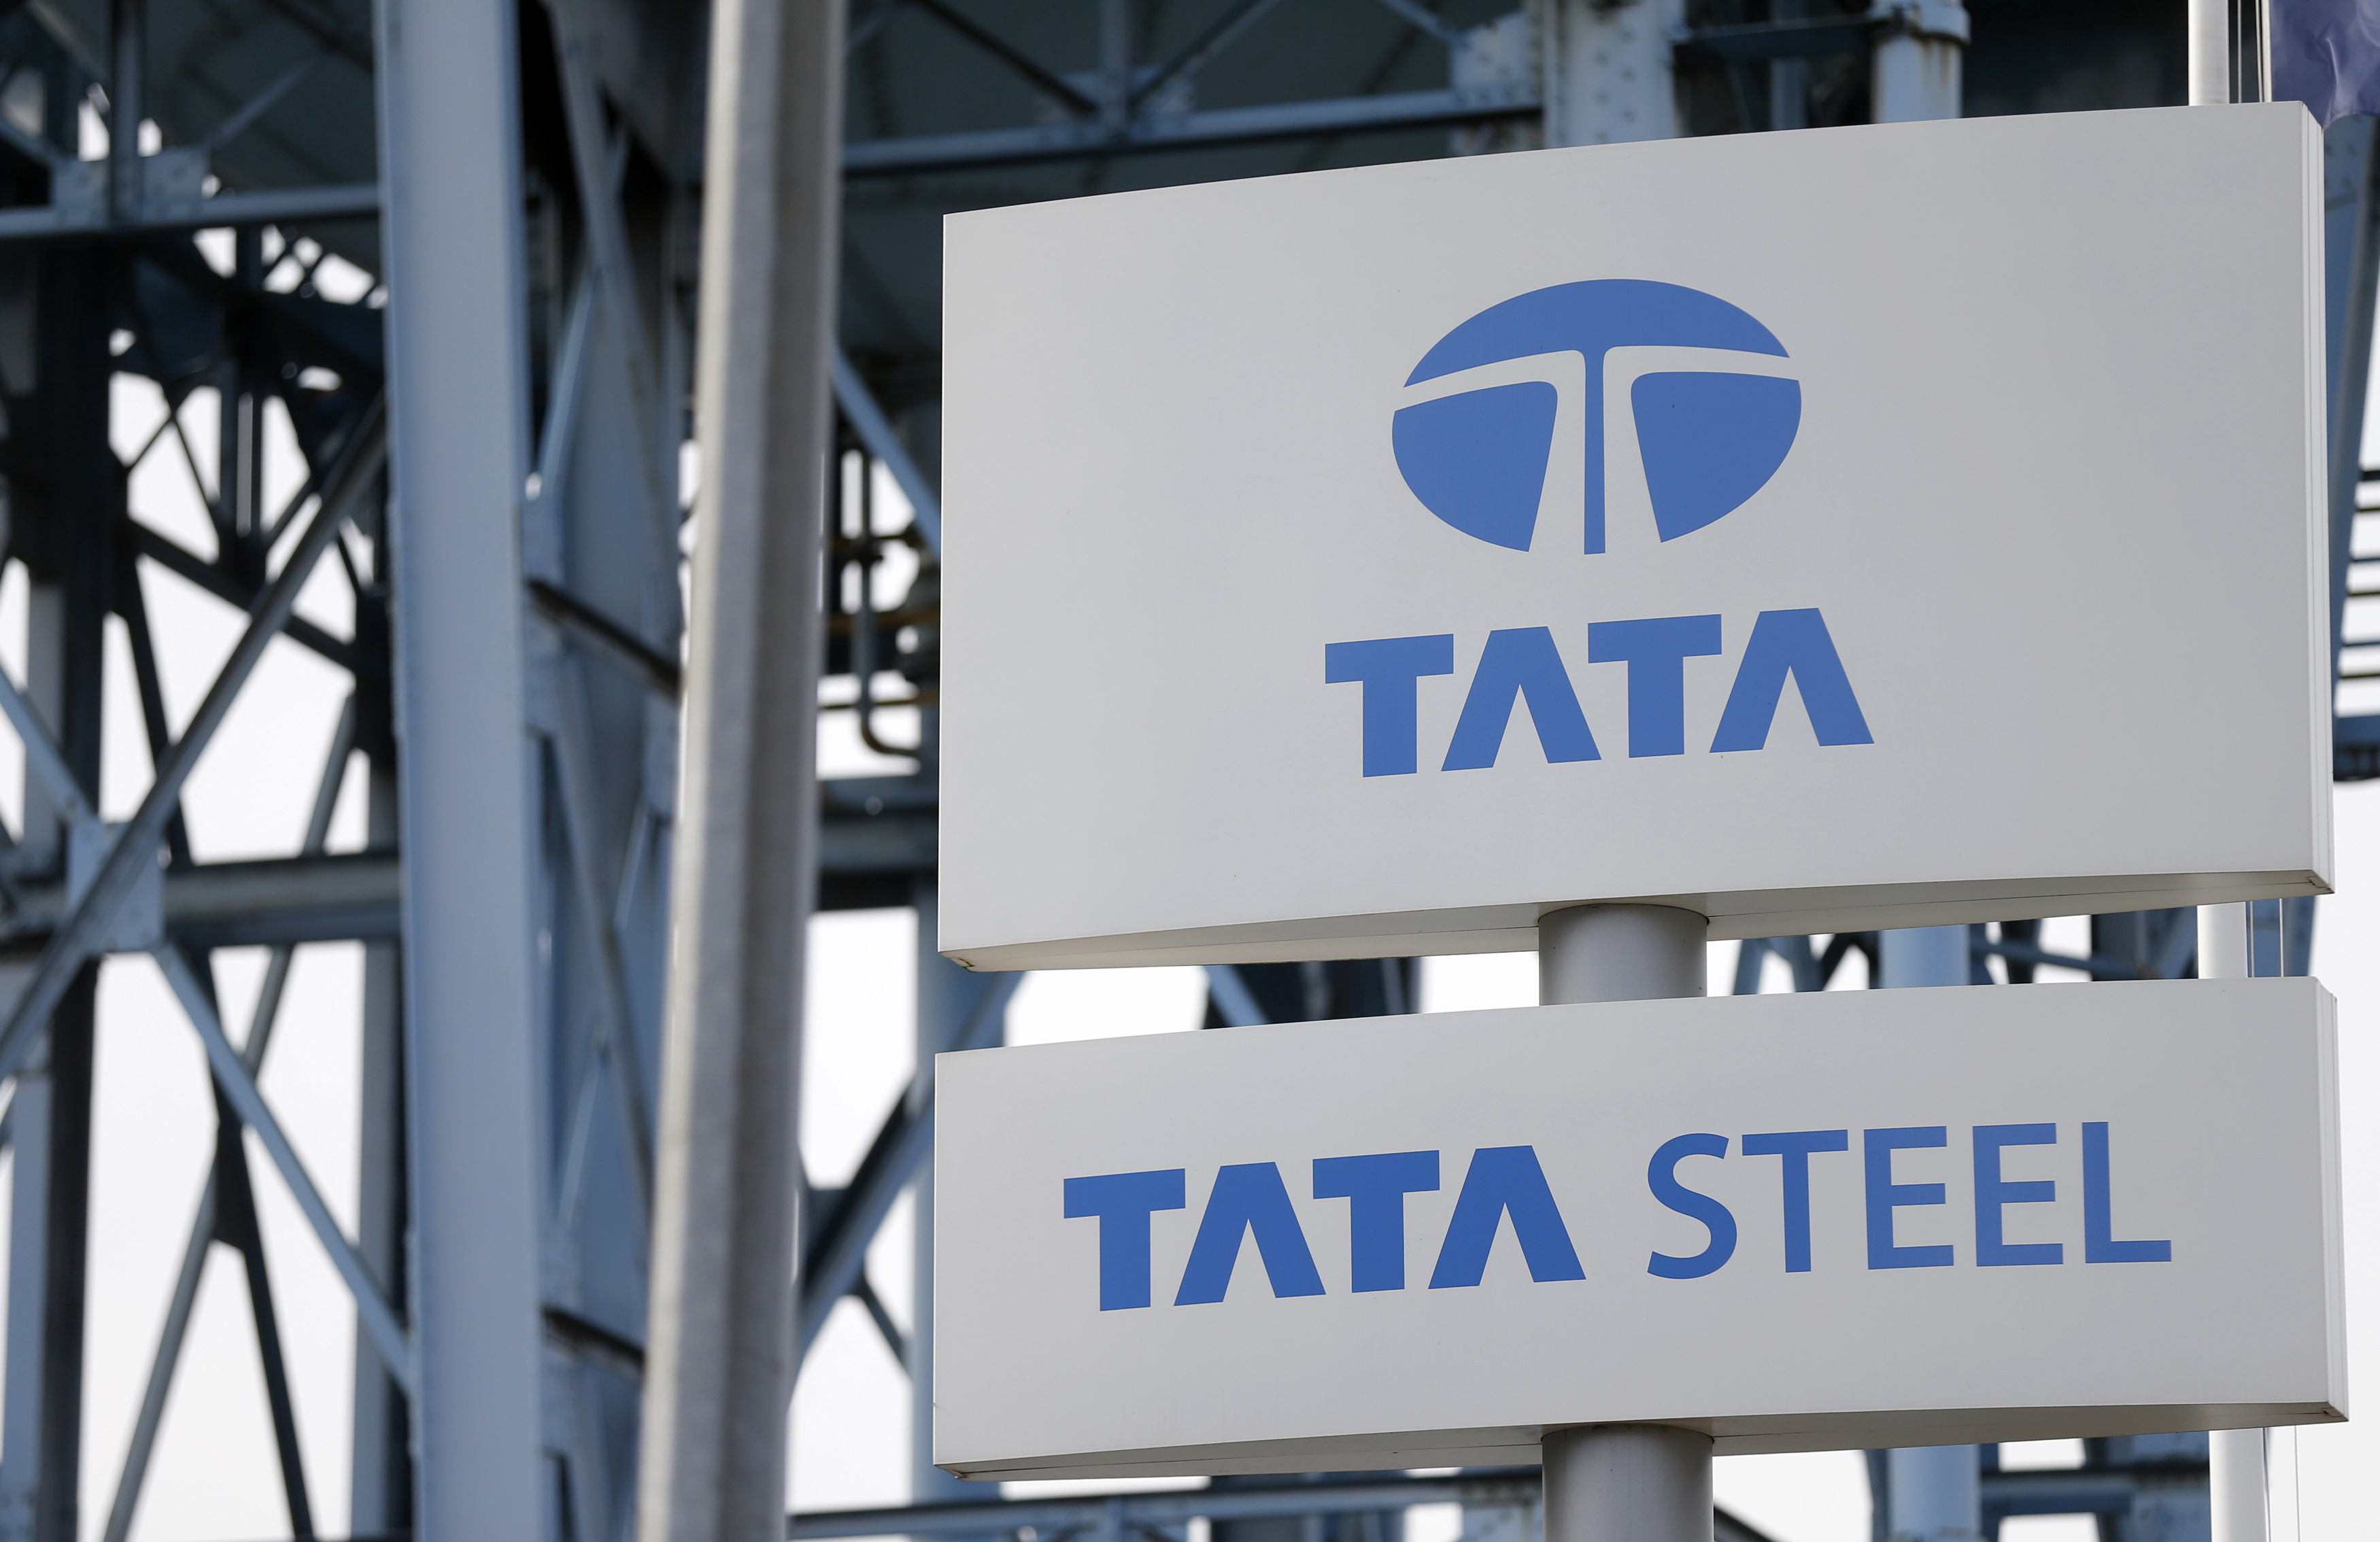 Tata Steel-controlled JV completes buyout of Canadian iron ore company for $4M